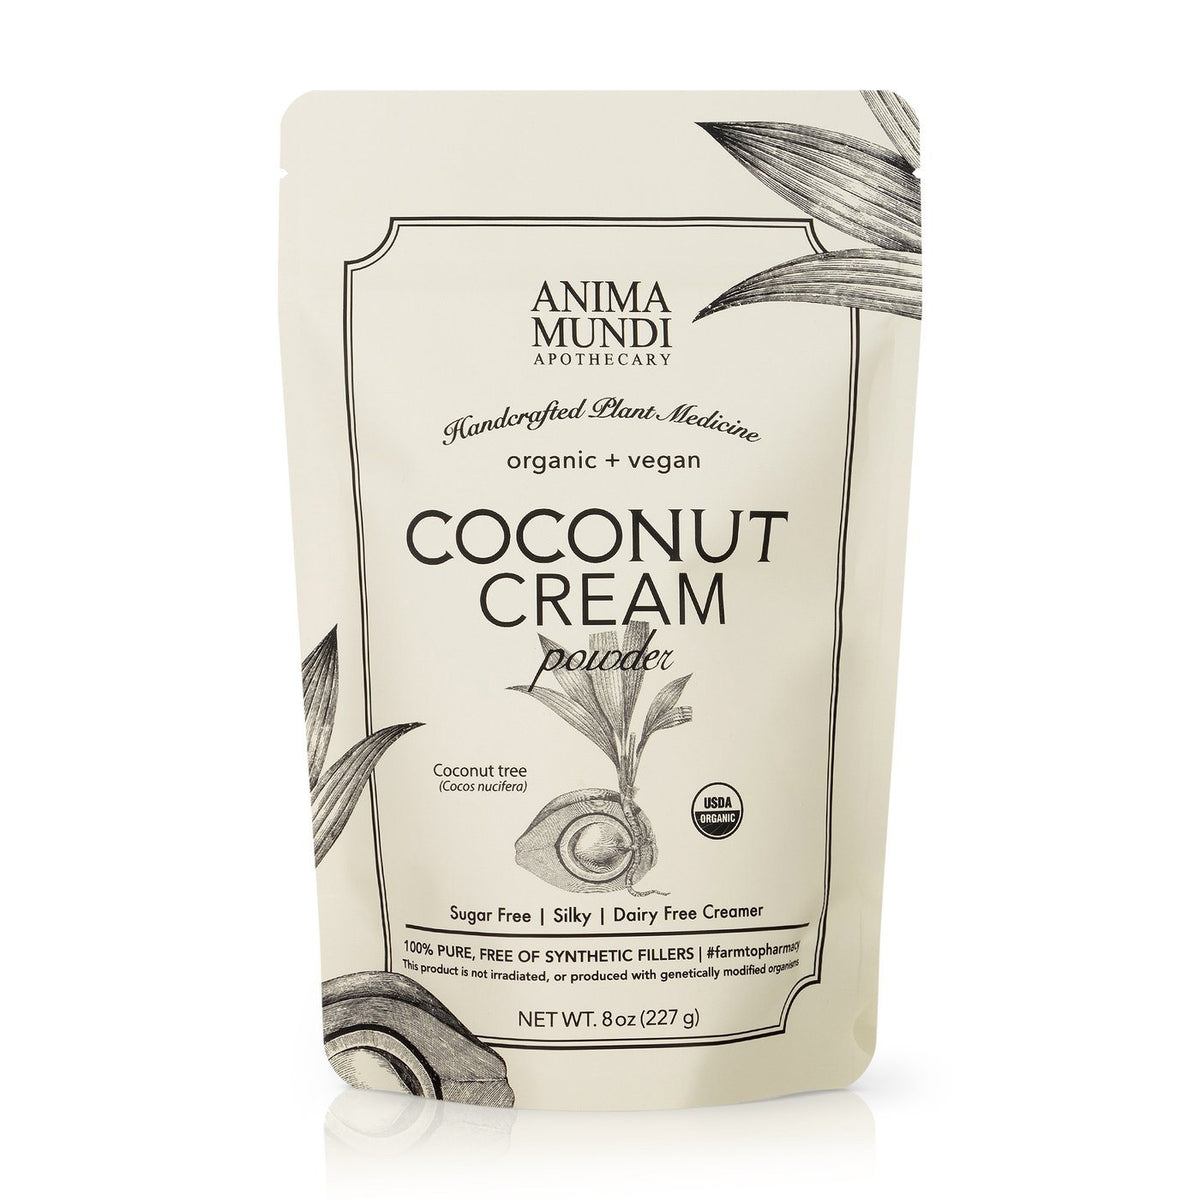 Coconut Cream Powder Nahrungsergänzungsmittel Anima Mundi Apothecary - Genuine Selection